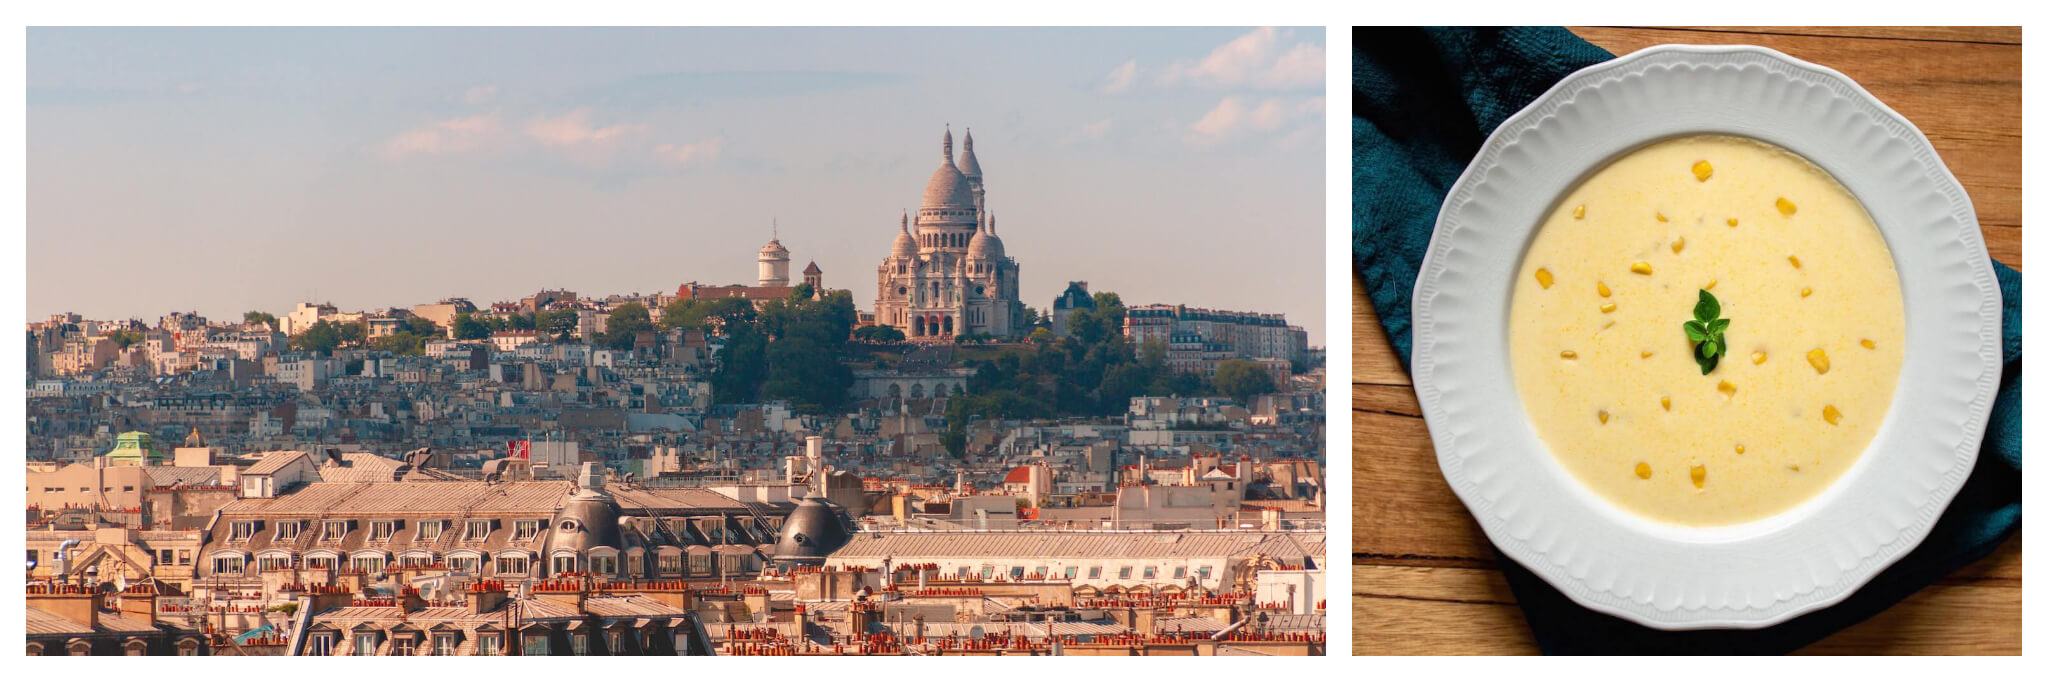 Left: A wide shot of a view of Parisian rooftops and the Sacre-Coeur at the top of Montmartre hill at sunset, Right: An overhead shot of a larg bowl of yellow soup with a sprig of herbs in the middle, plated in a detailed white bowl and placed on top of a blue towel.